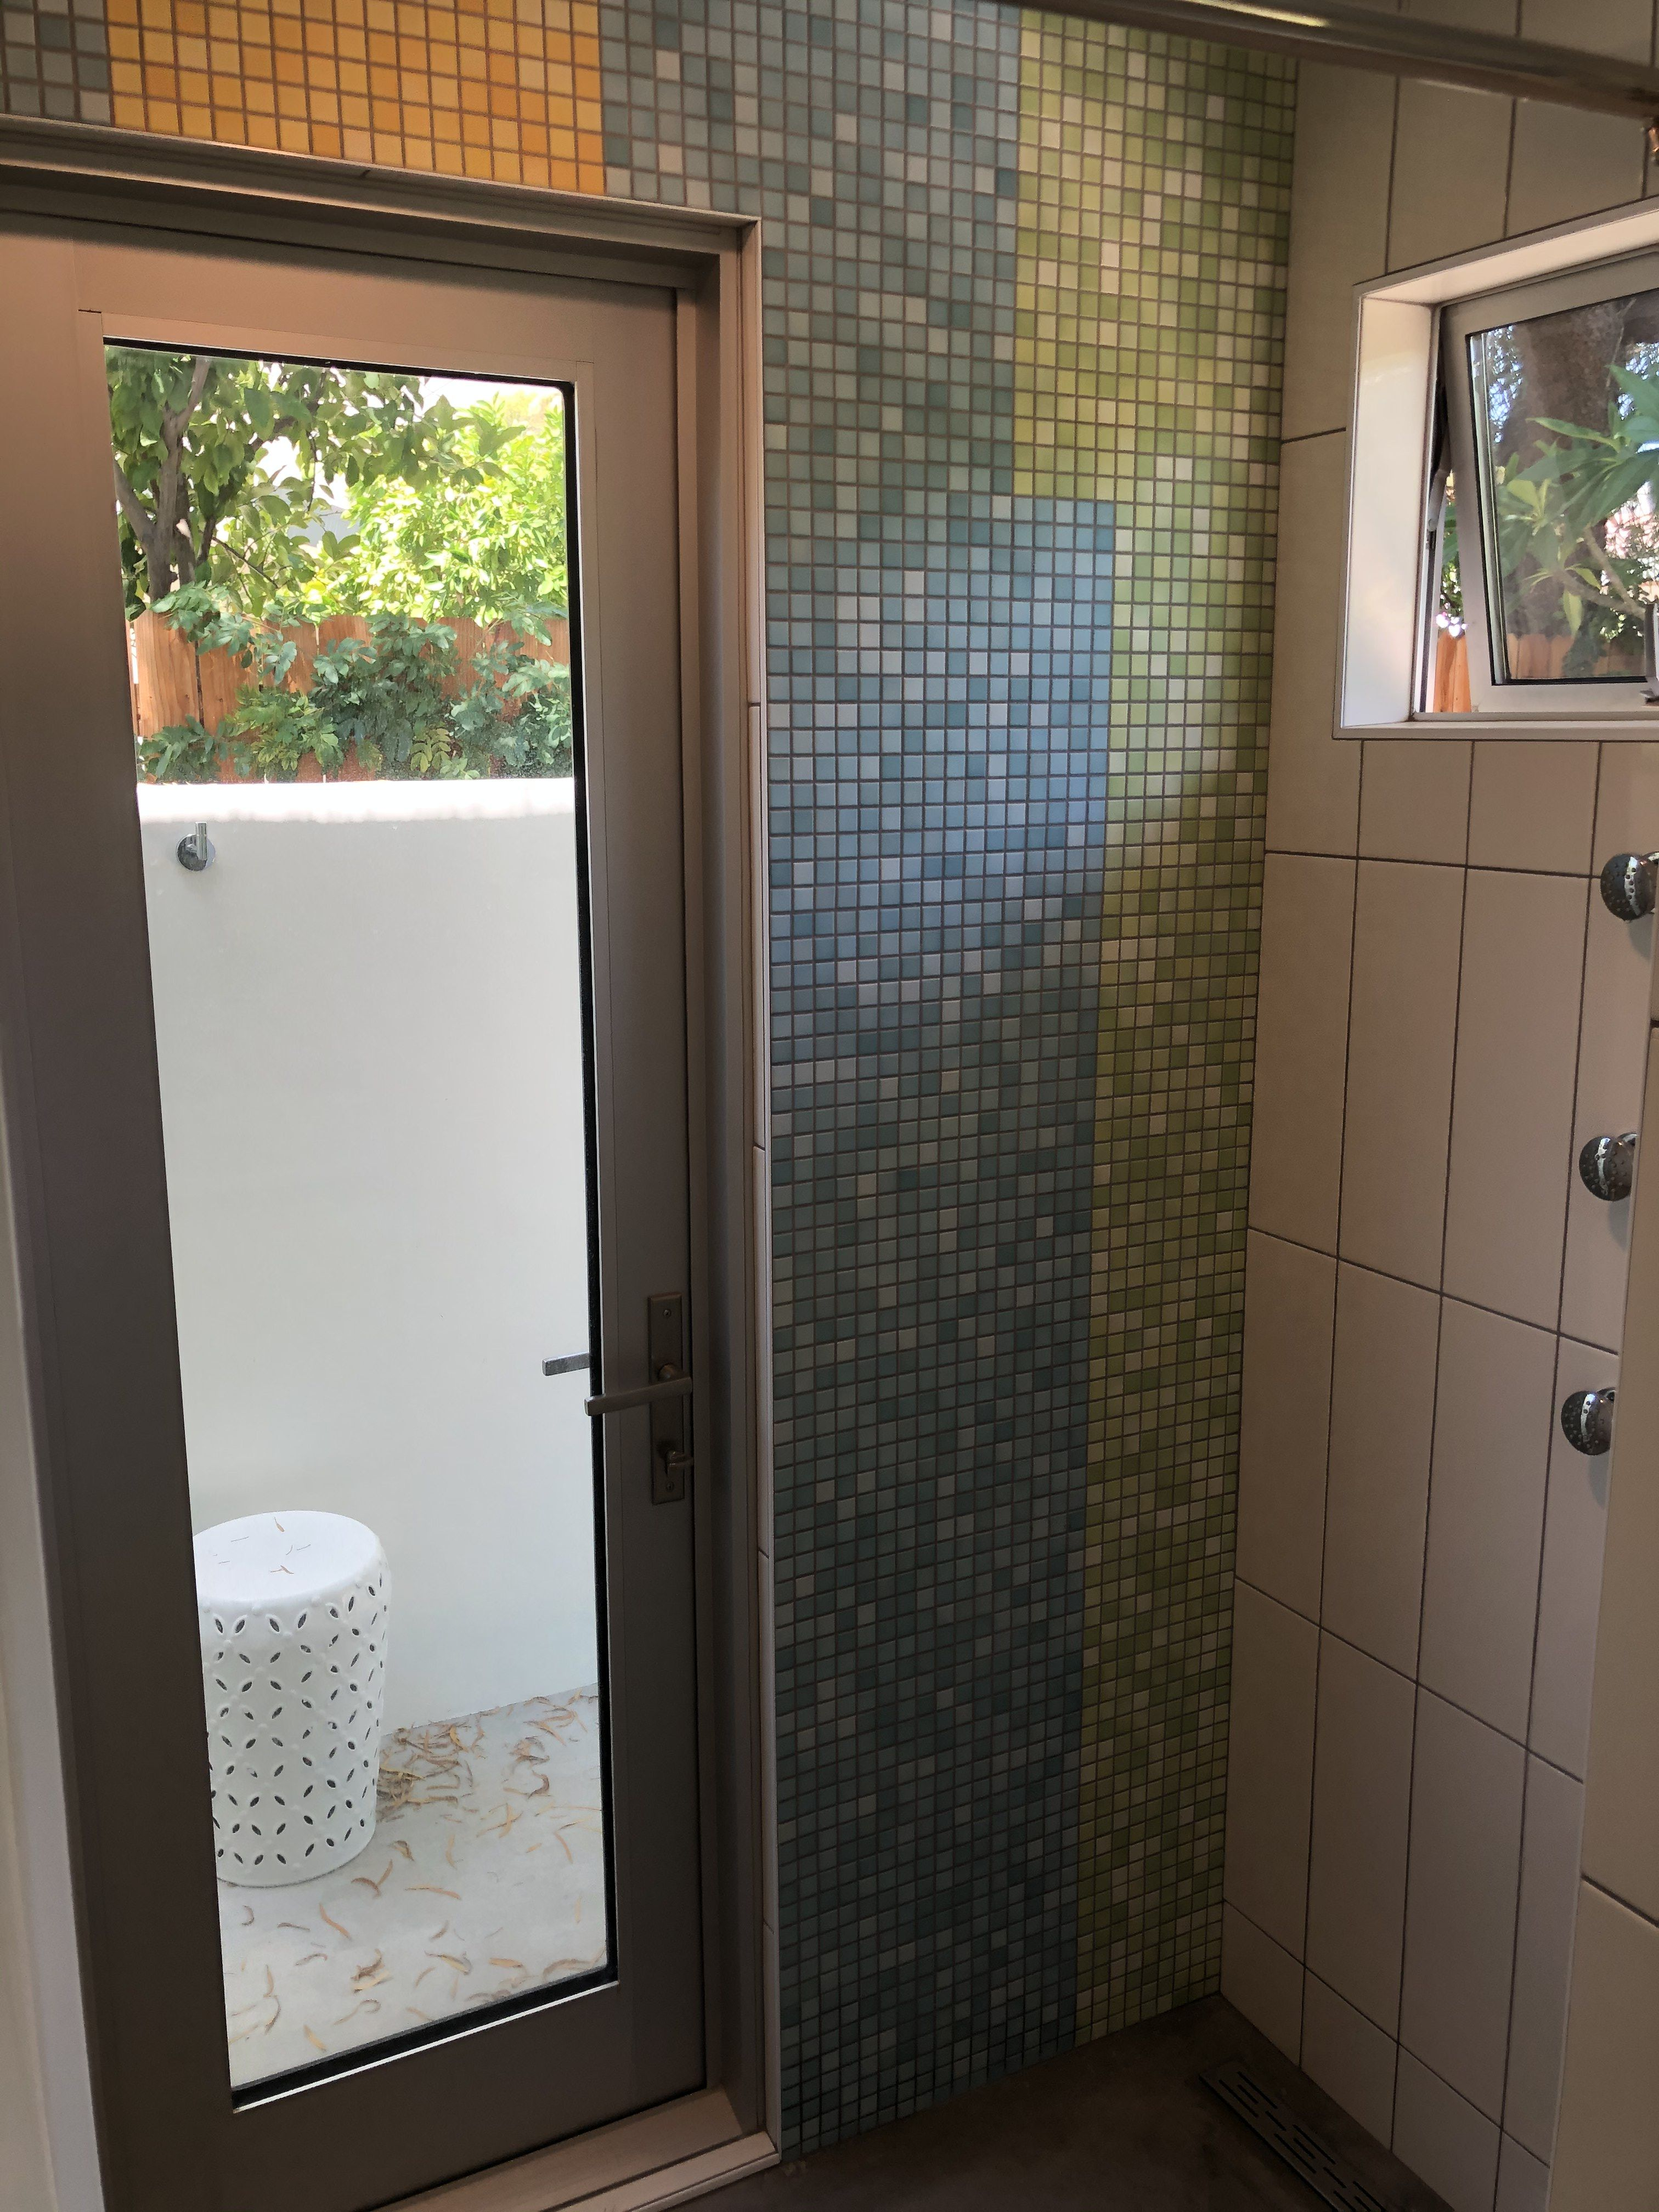 Pin By Modwalls On Home Space Bathrooms In 2020 Modern Tiles Mediterranean Mosaic Tile Modwalls